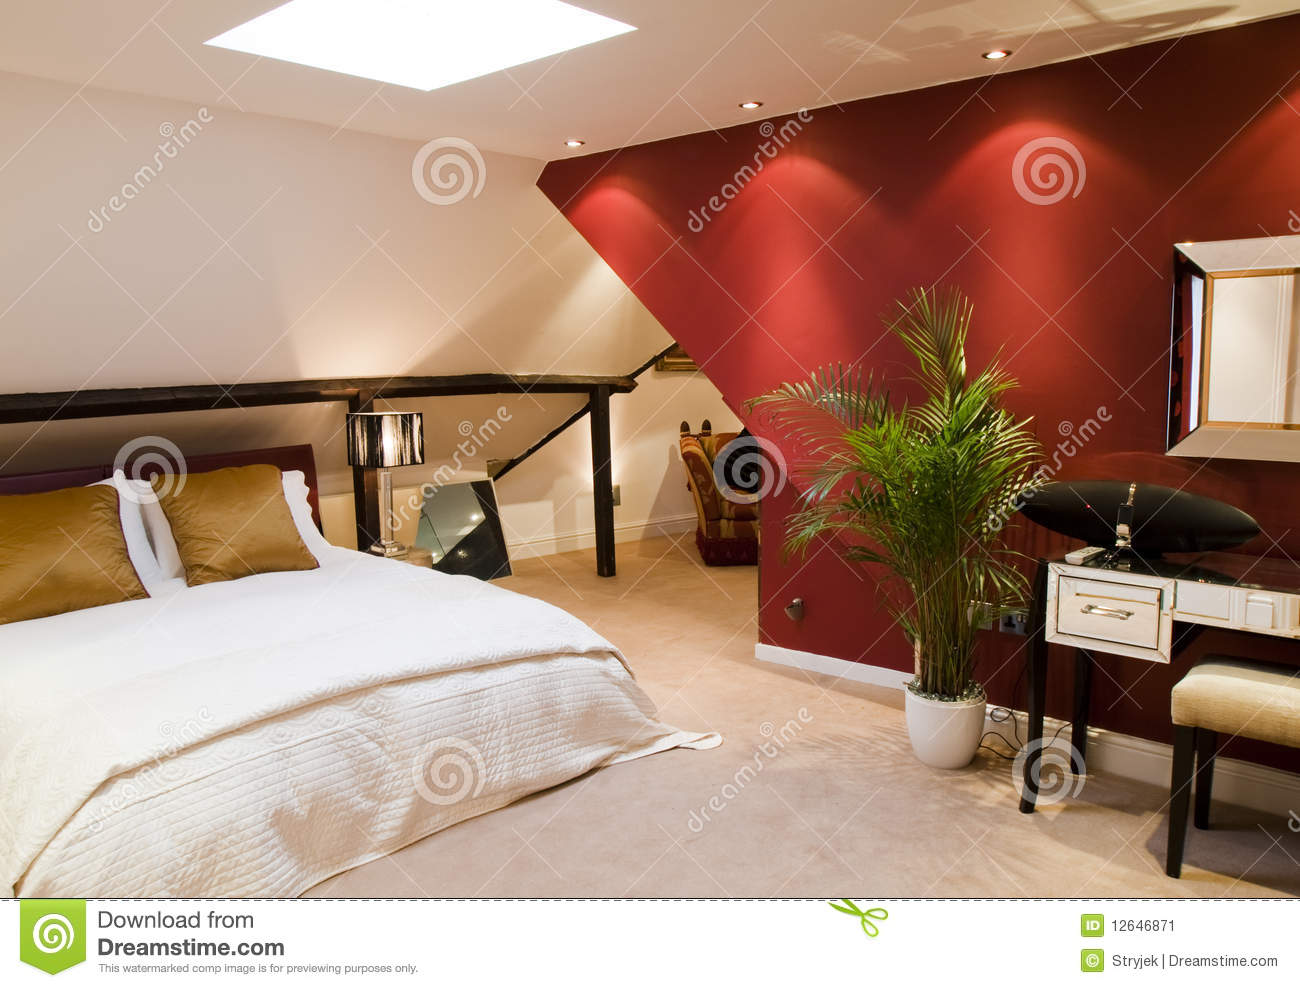 Chambre coucher moderne rouge image stock image 12646871 - Chambre a coucher moderne rouge ...